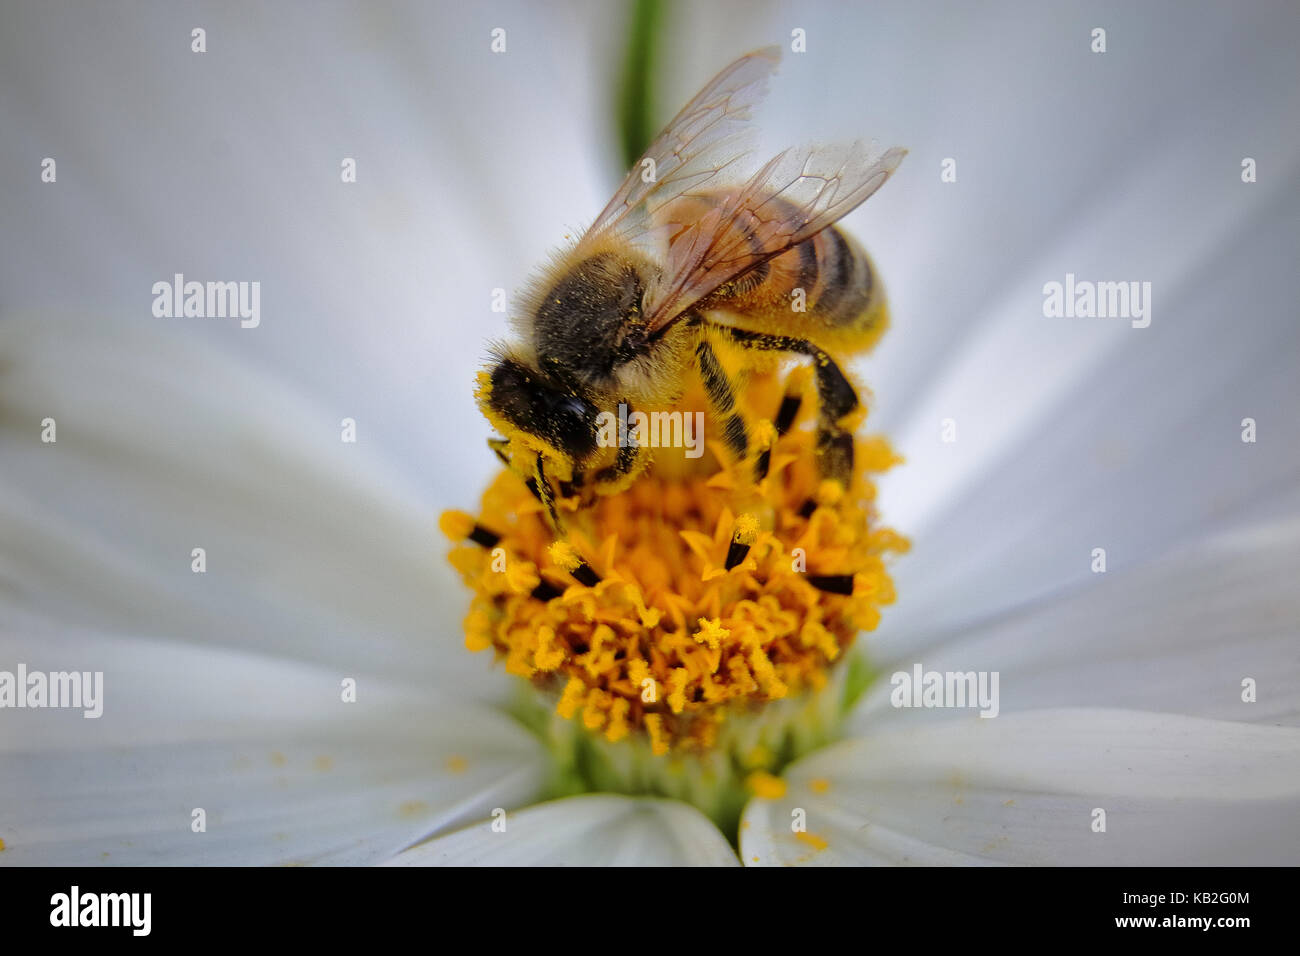 macro of a bee covered in pollen on a white cosmos flower - Stock Image